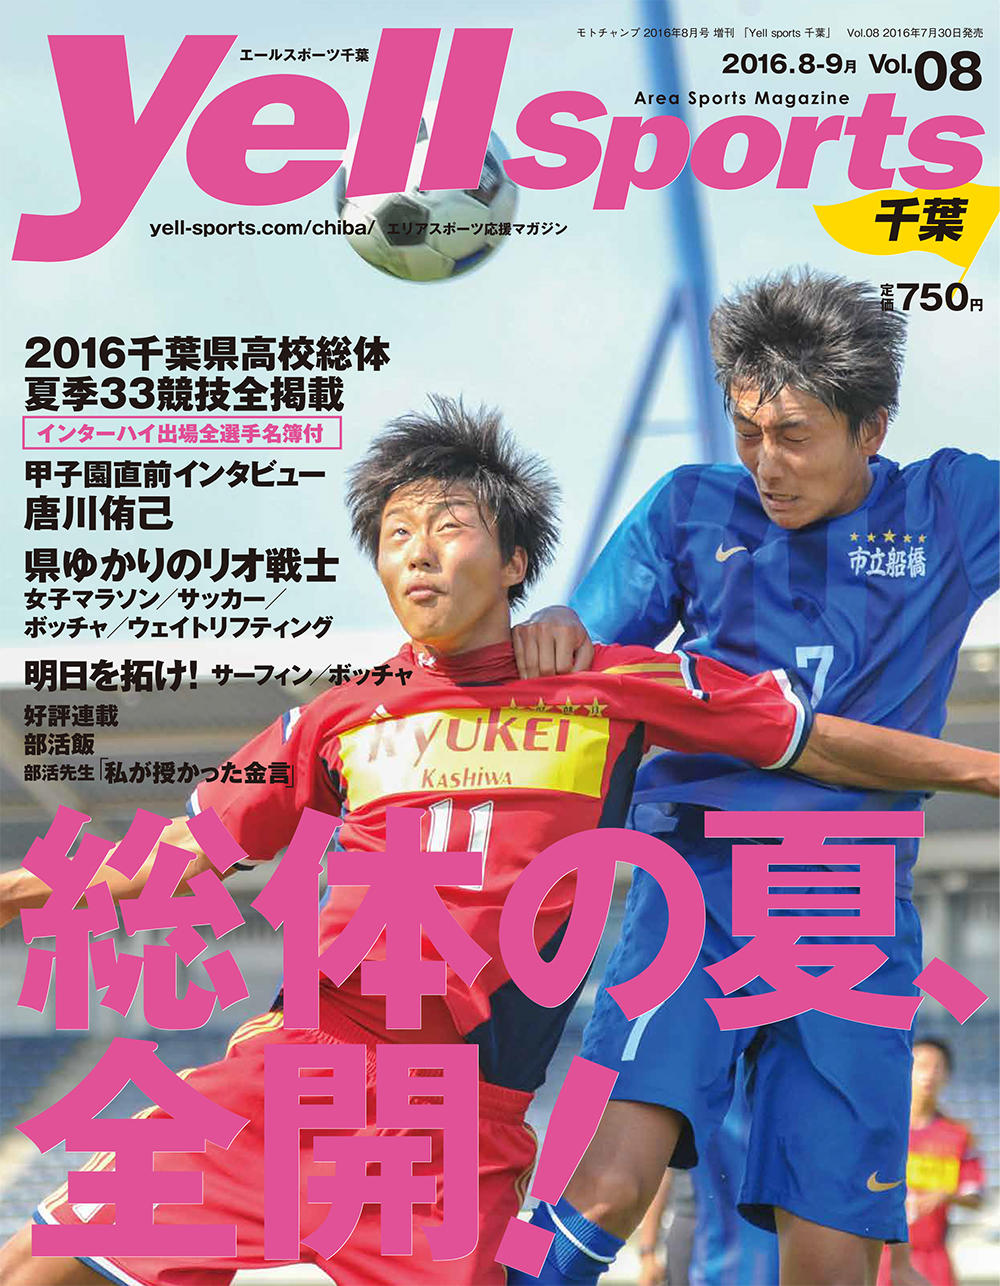 http://yell-sports.com/chiba/article/2016/ysc_08_H1.jpg